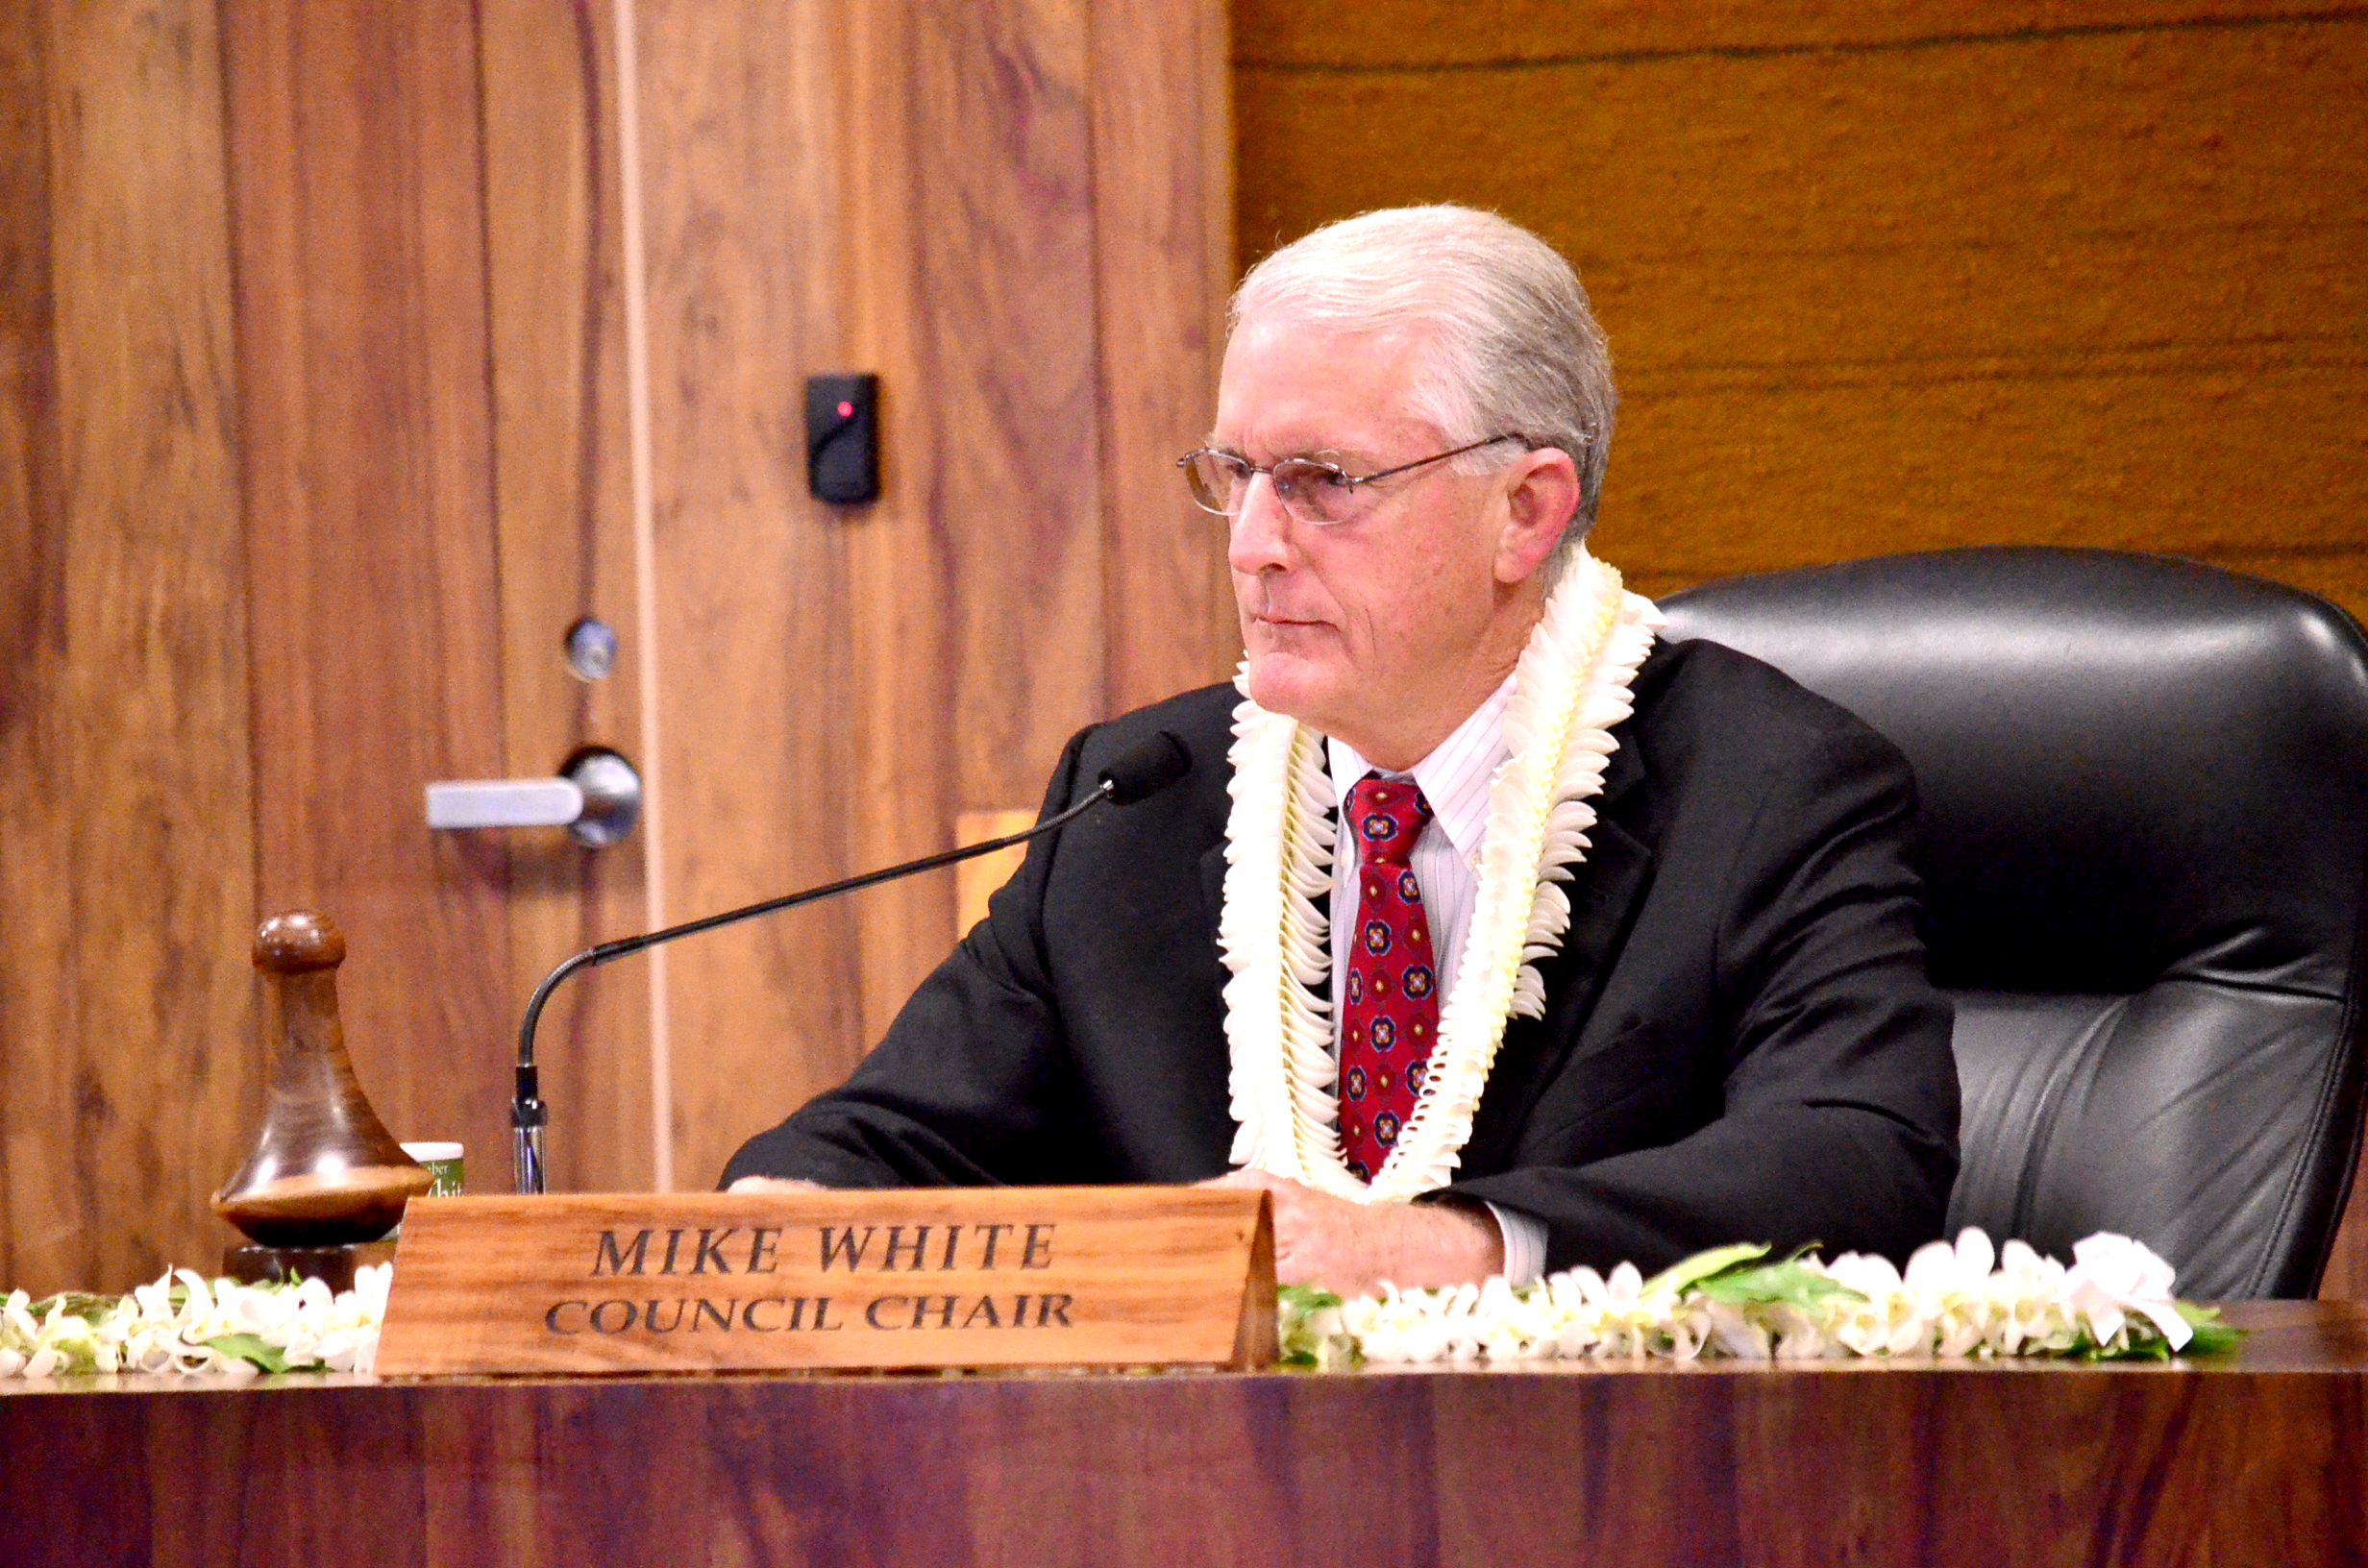 Councilmember Mike White